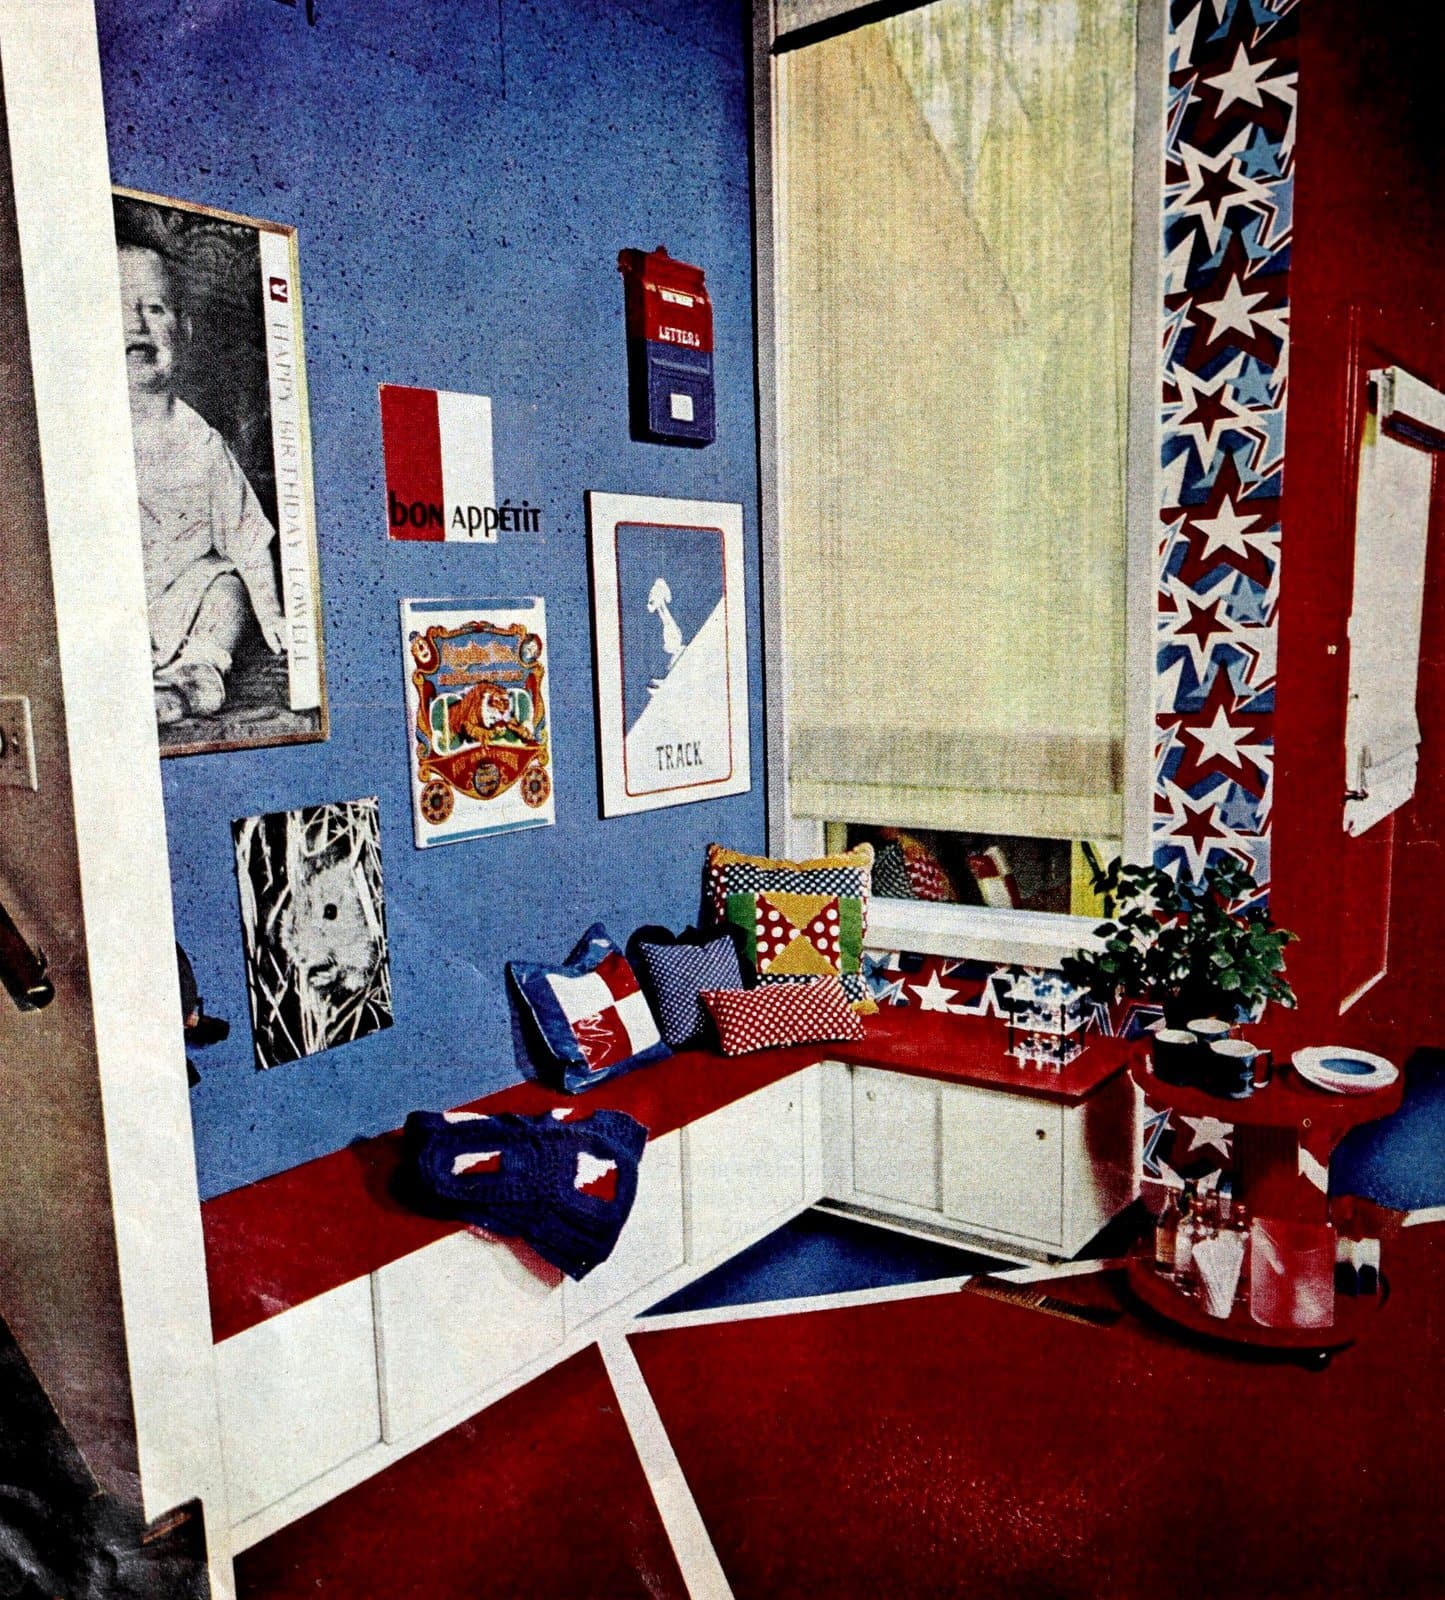 Red white and blue child's bedroom theme with built-in seating (1975)